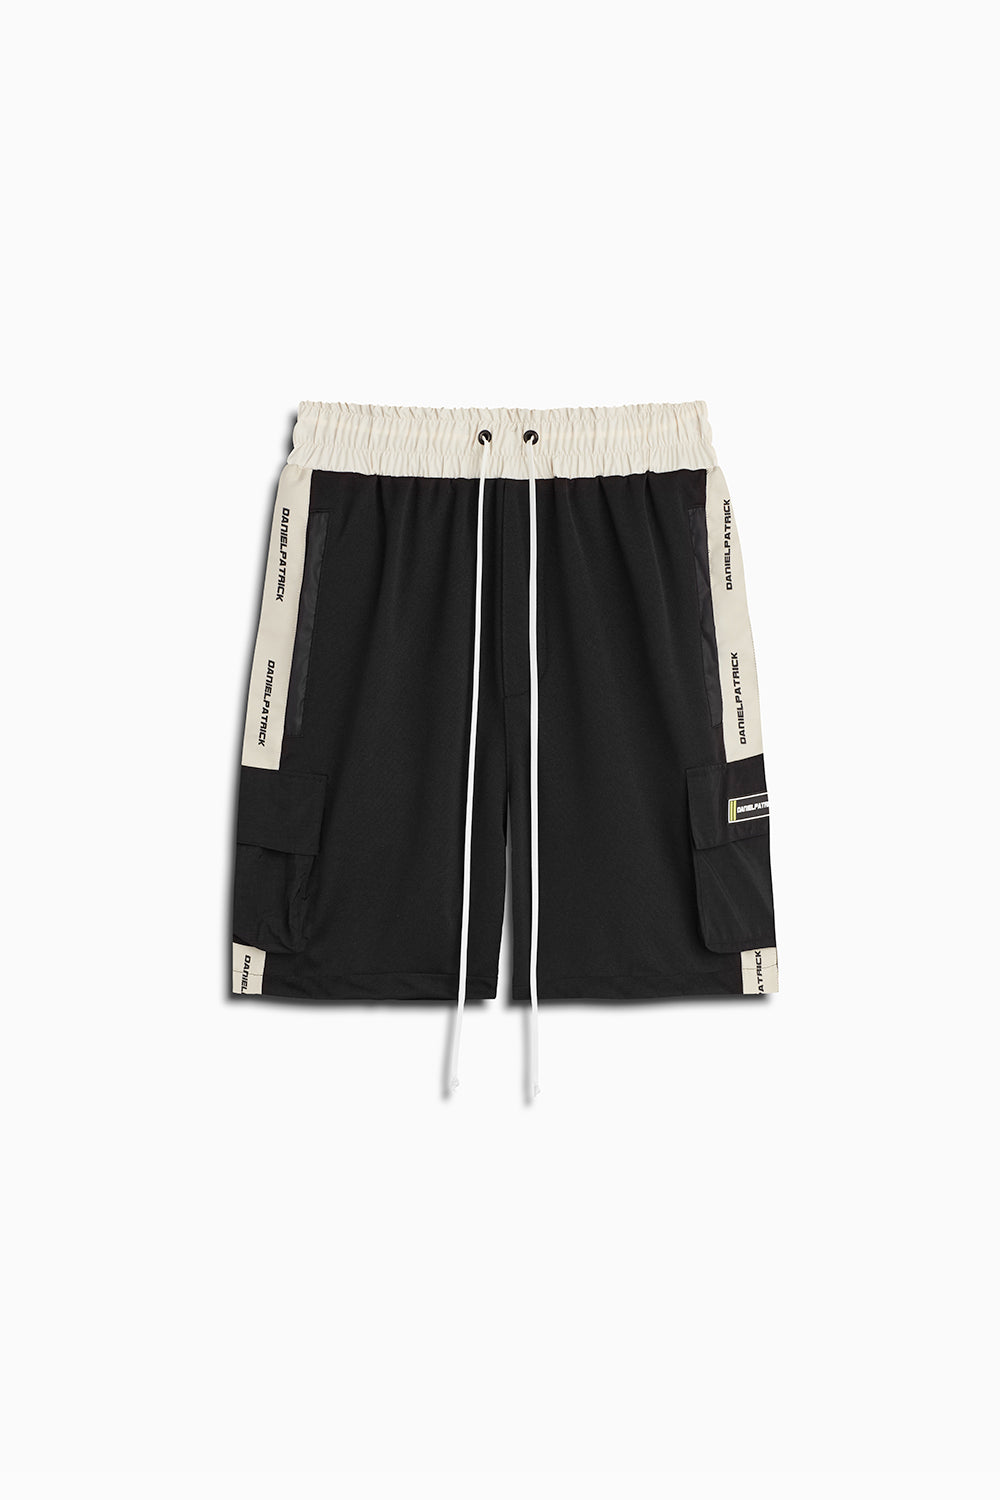 cargo gym short in black/ivory by daniel patrick